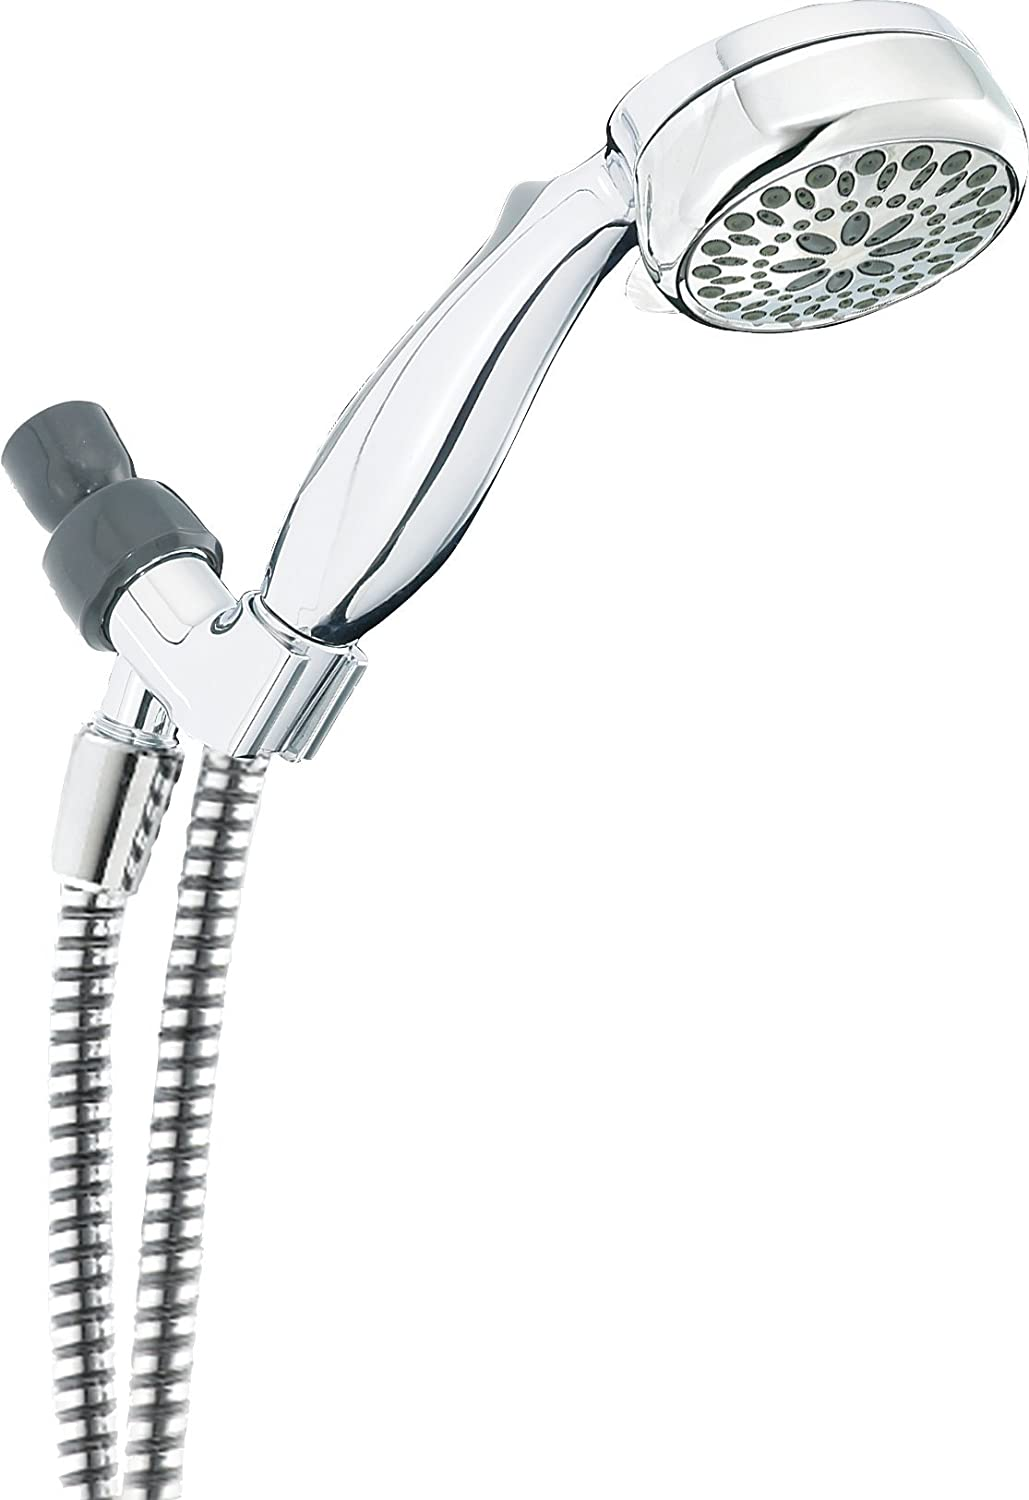 Attractive Delta 7 Spray Touch Clean Hand Held Shower Head With Hose, Chrome (75700)    Hand Held Showerheads   Amazon.com